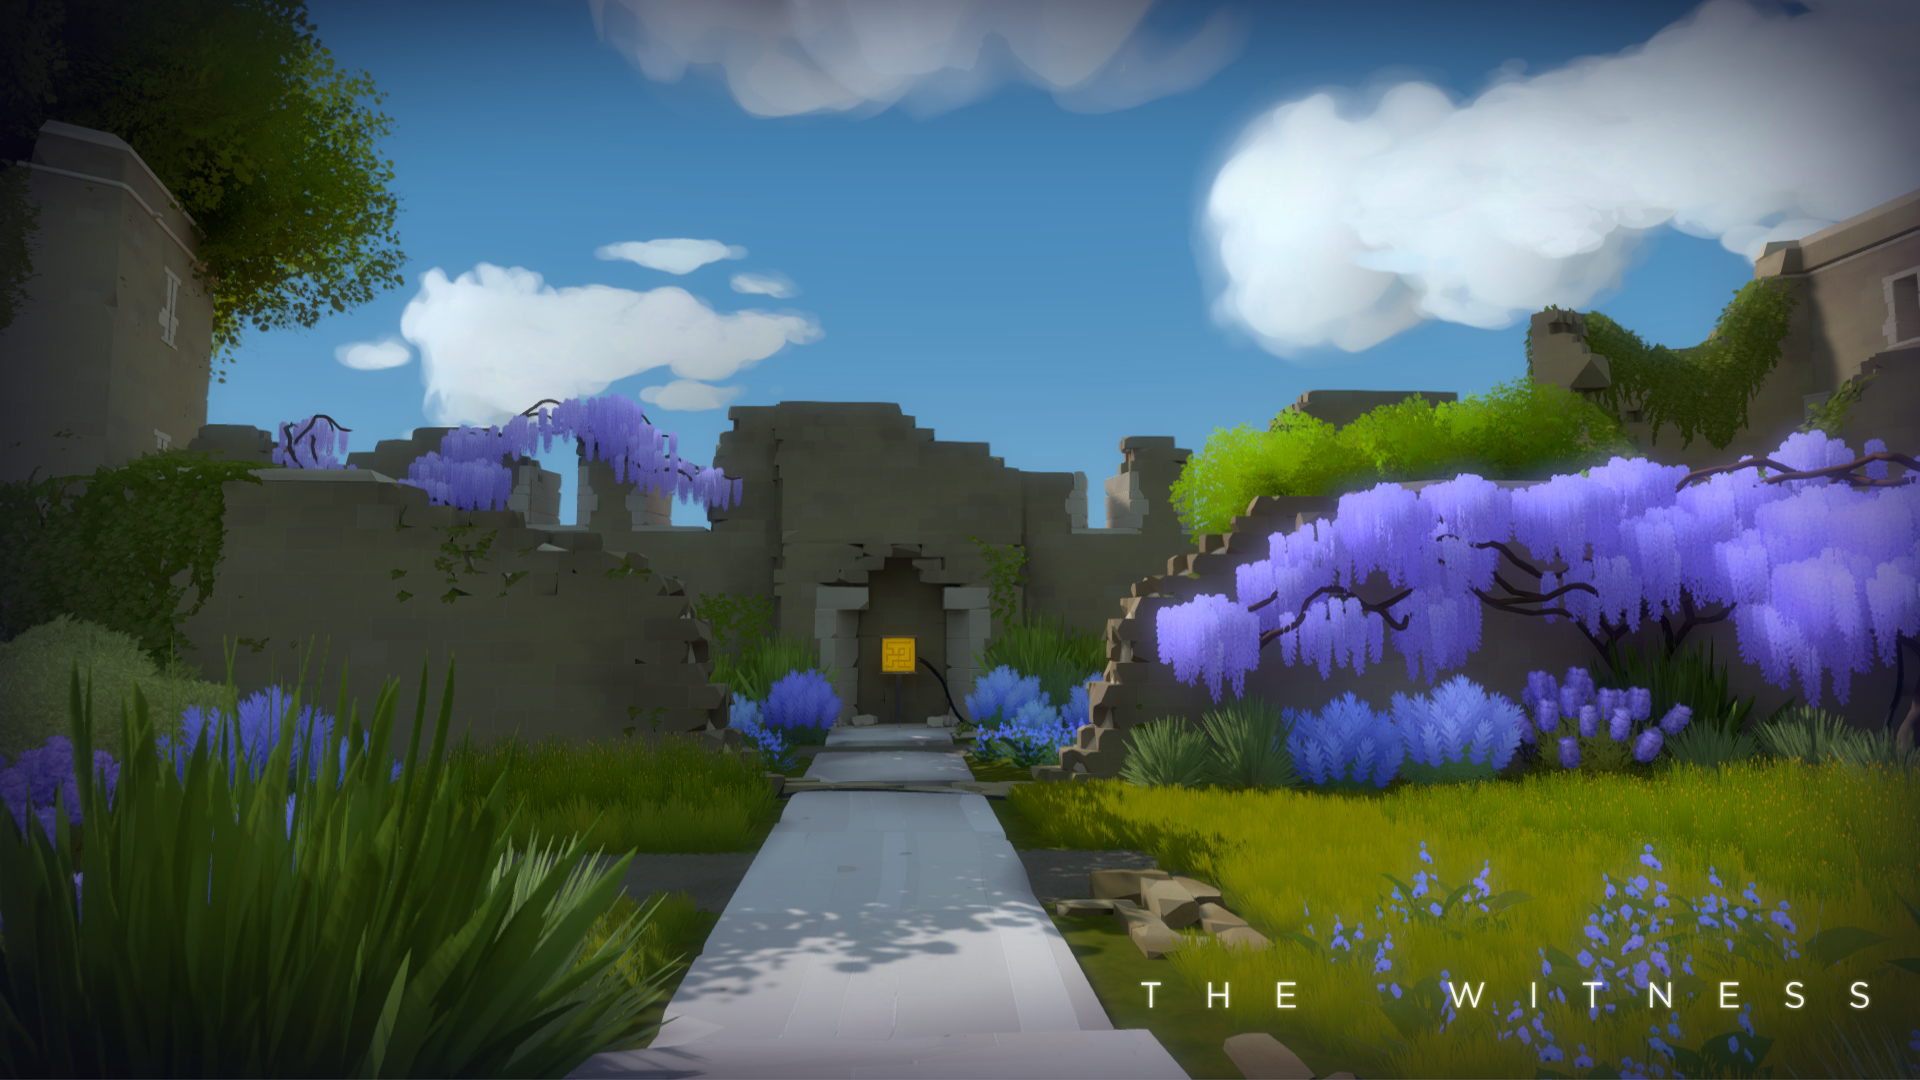 The witness game wallpaper games live wallpaper for pc games wallpaper - Video game live wallpapers ...